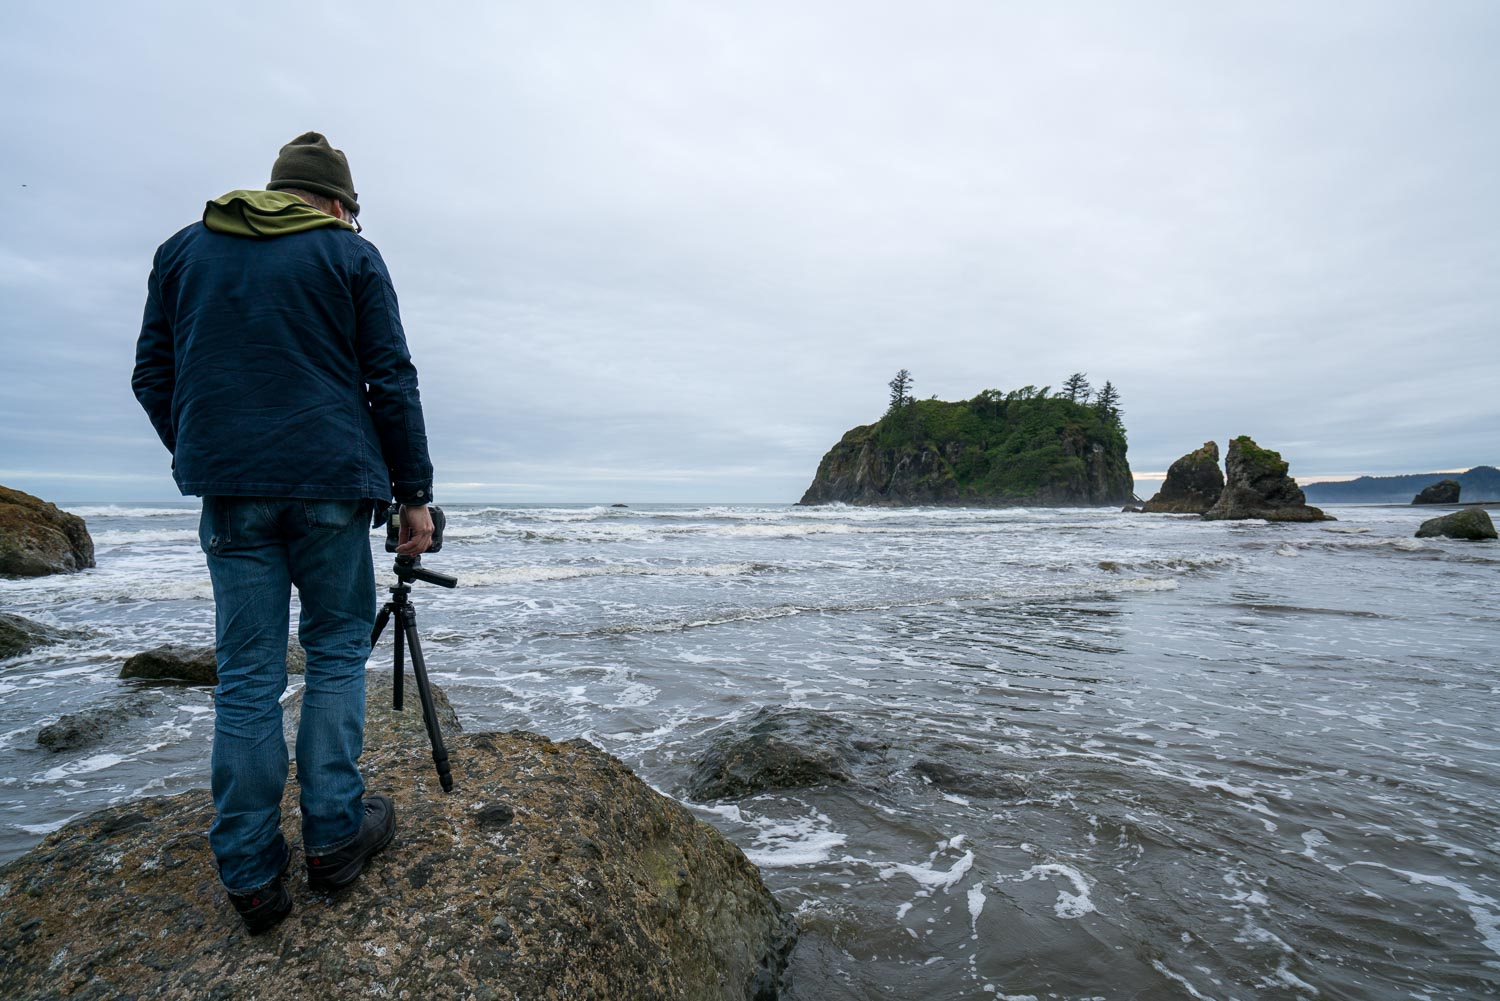 Photography workshop in Olympic National Park